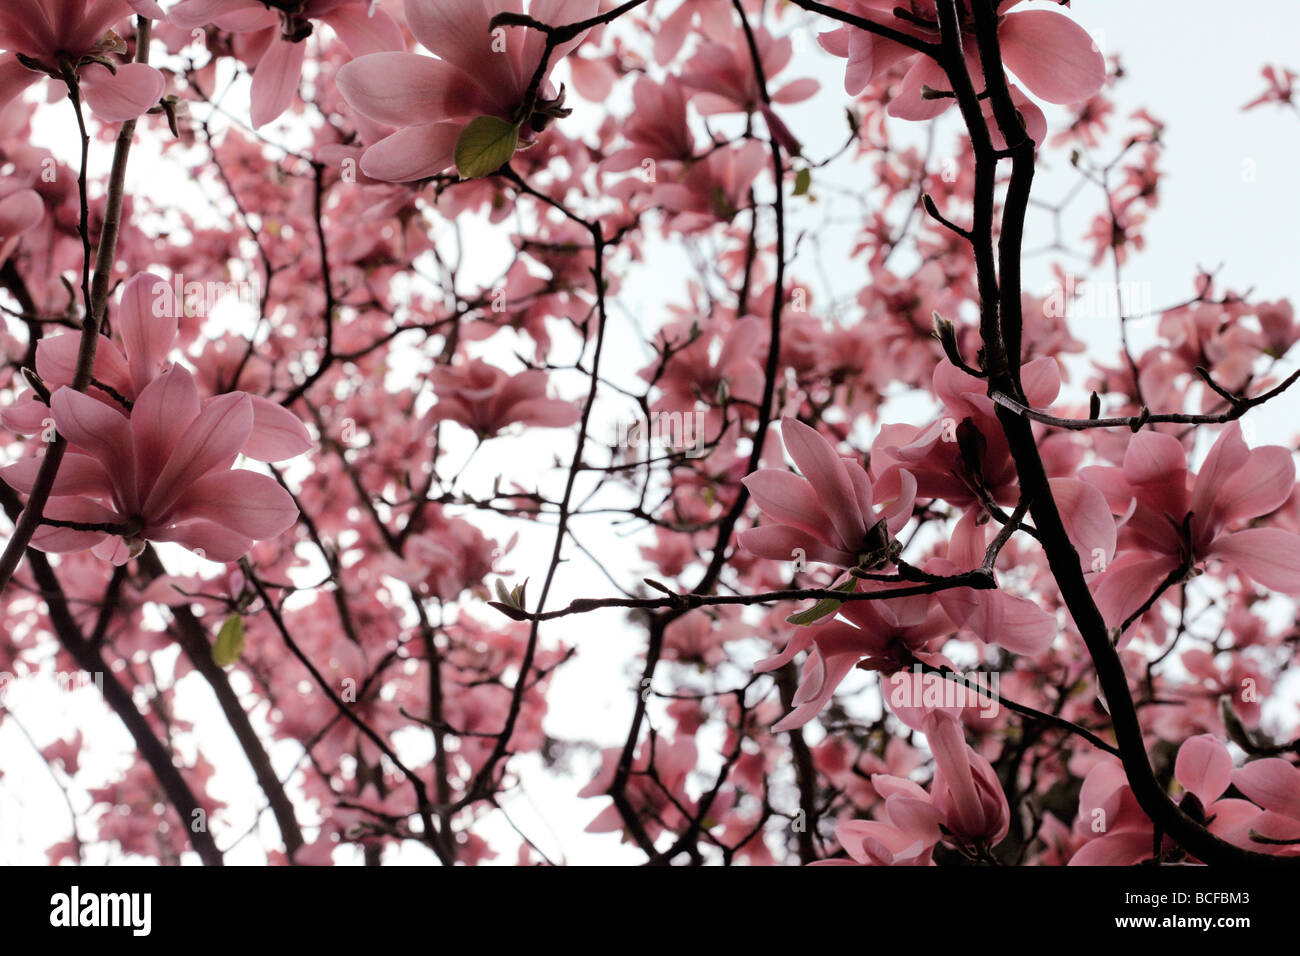 striking pink magnolia tree blooms fine art photography Jane Ann Butler Photography JABP433 - Stock Image